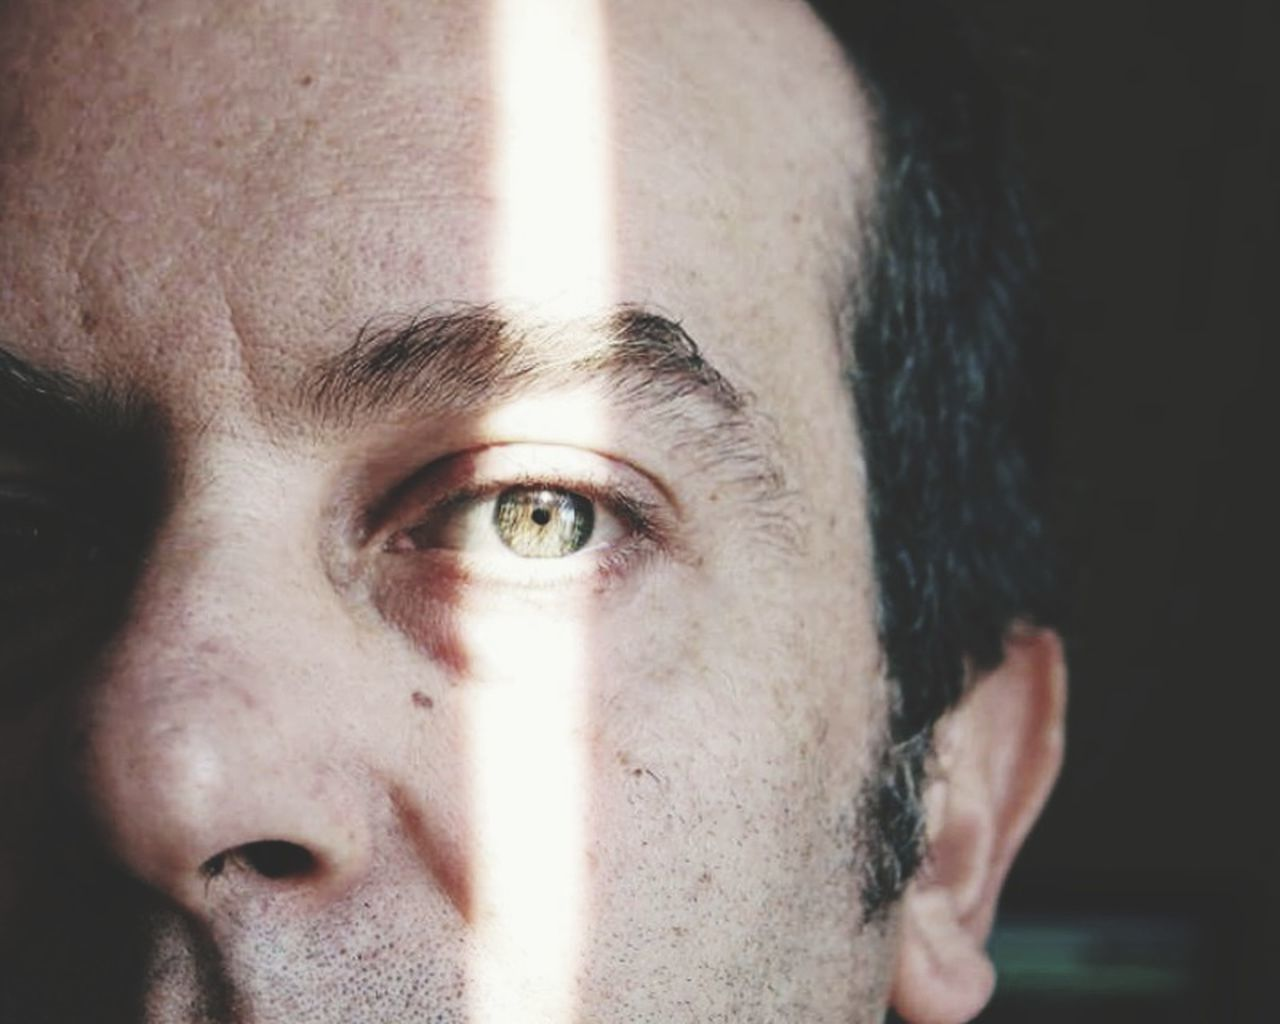 portrait, one person, headshot, close-up, human face, human body part, body part, looking at camera, eye, real people, human eye, young adult, indoors, front view, men, looking, skin, contemplation, eyebrow, black background